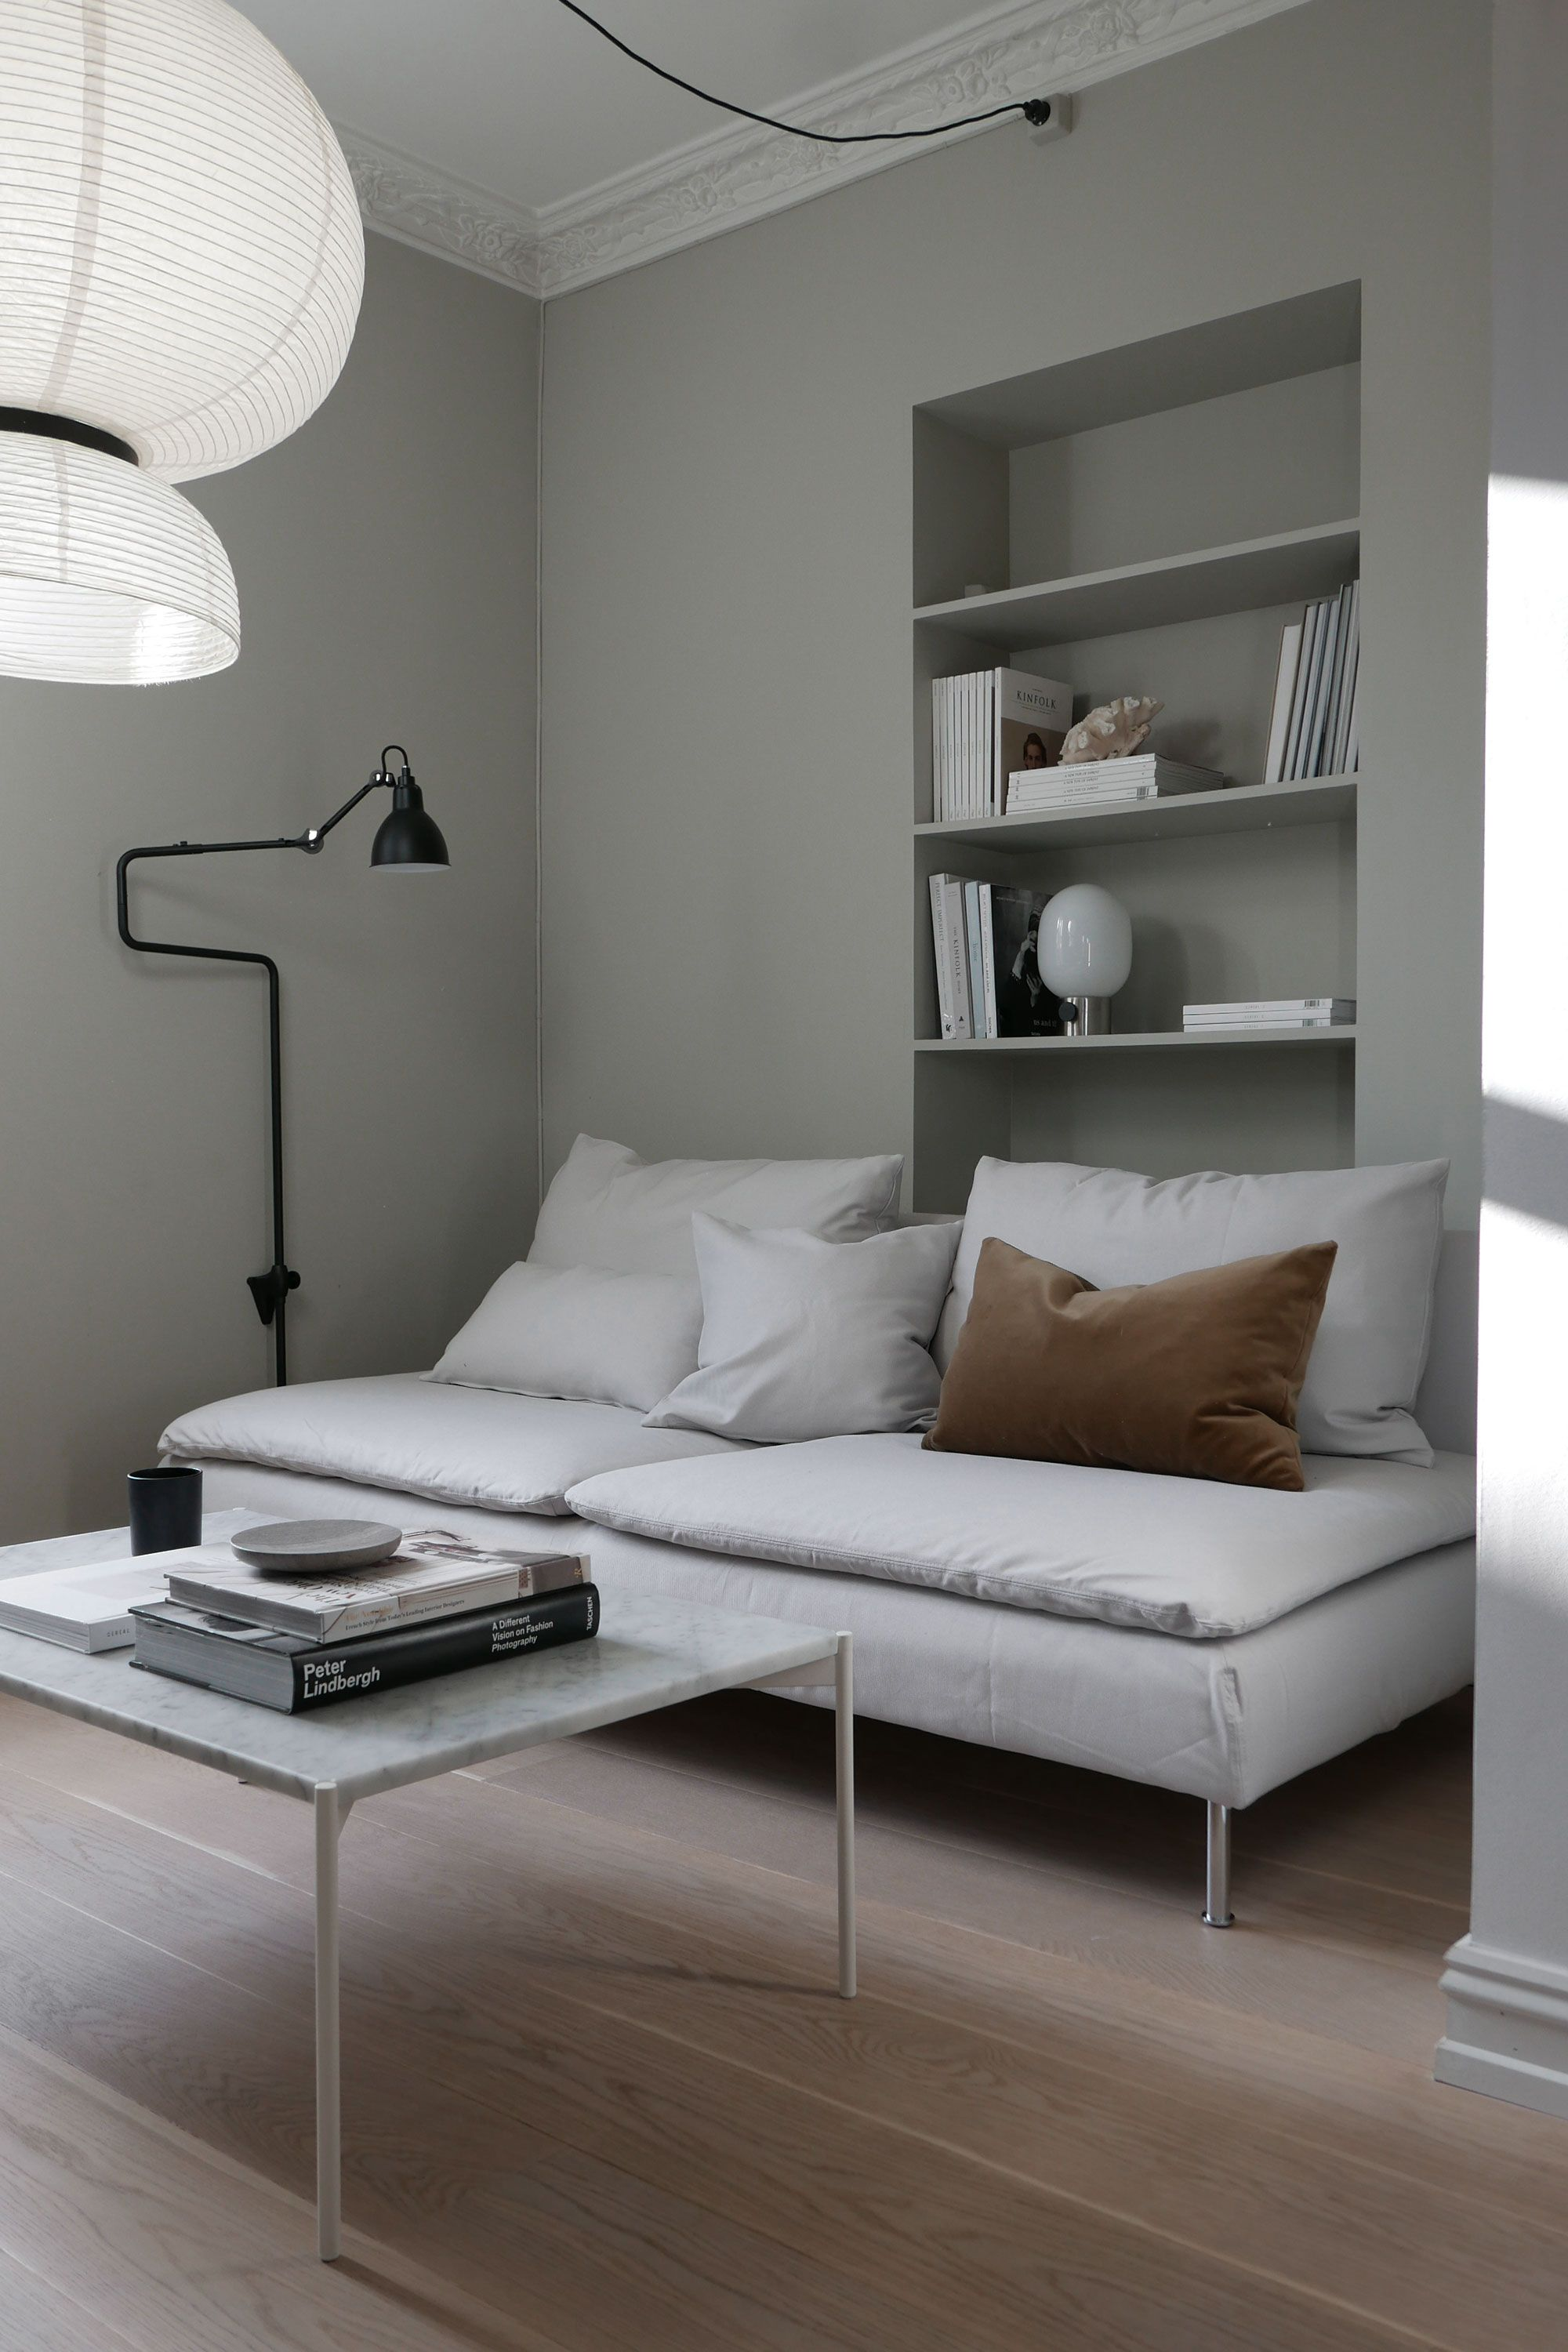 Ikea Staffelei Super Stylist Updated Her Ikea Söderhamn Sofa Bed With A